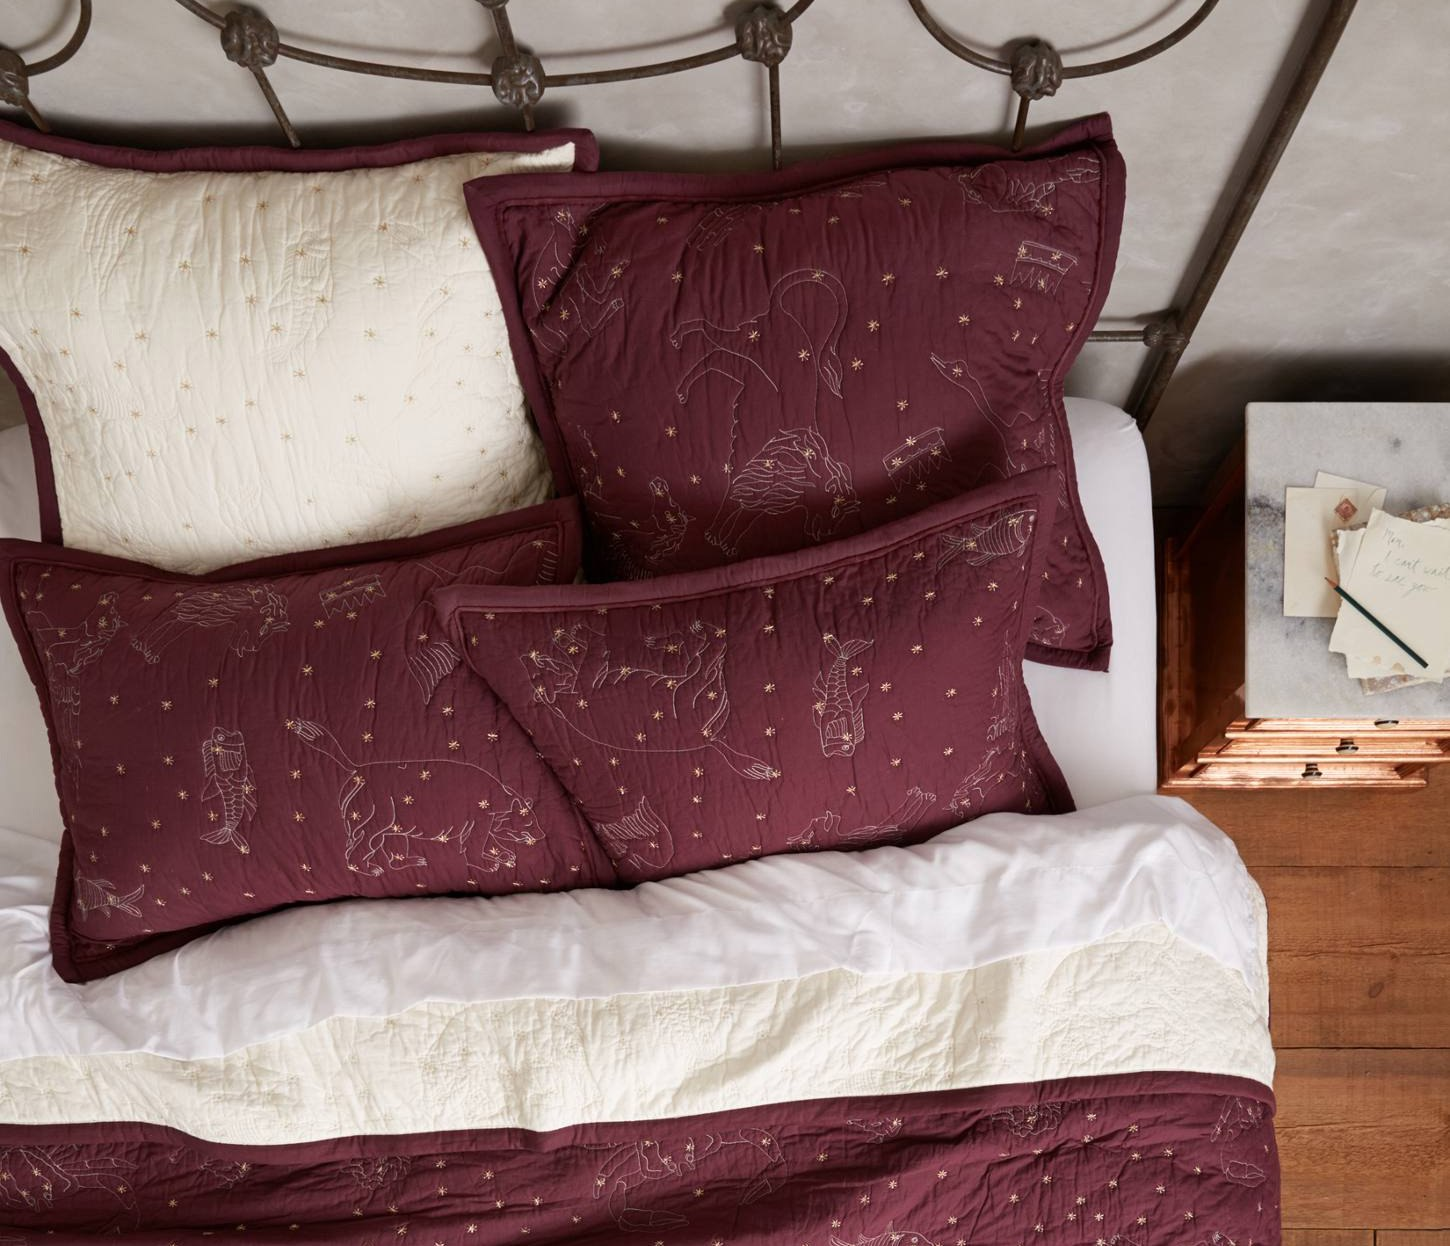 Anthropologie-Cosmos-Coverlet-in-Burgundy